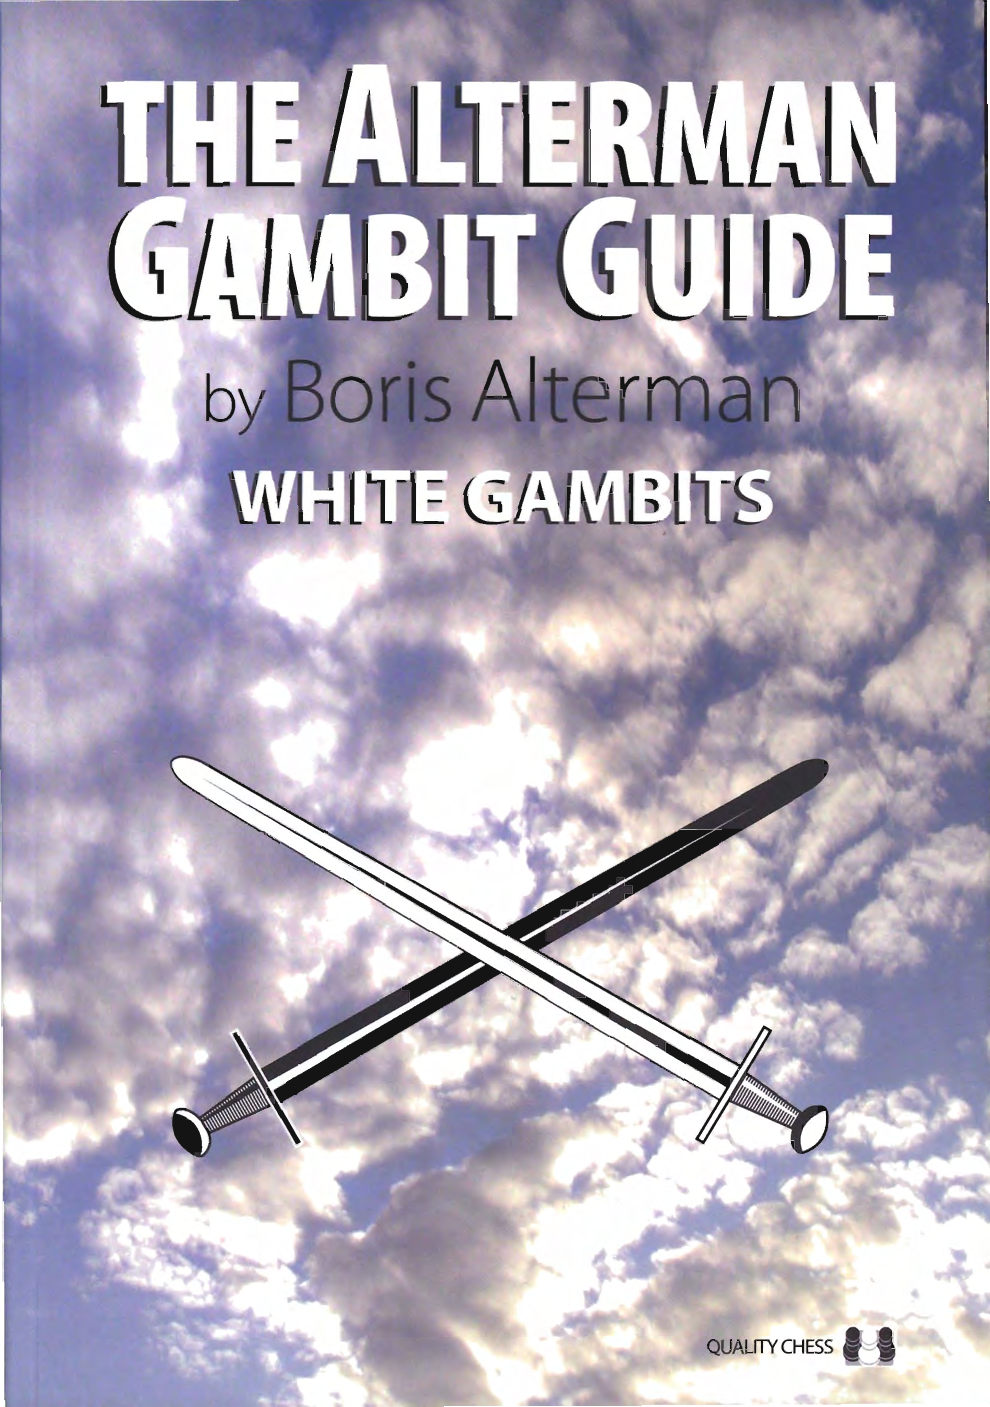 The Alterman Gambit Guide White Gambits